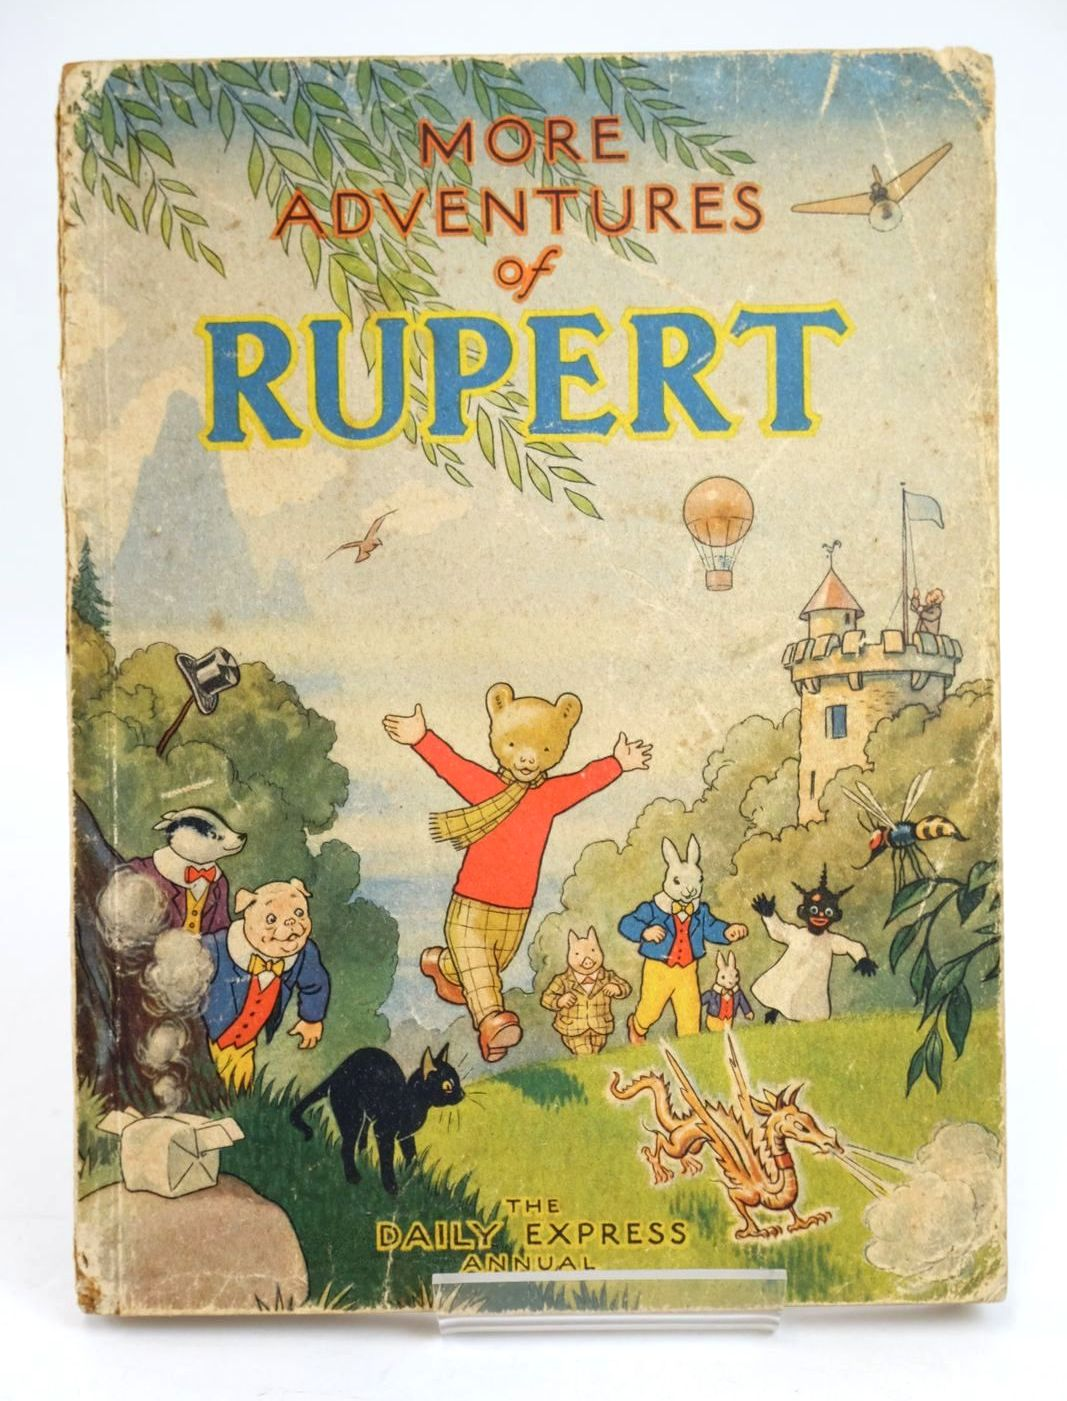 Photo of RUPERT ANNUAL 1947 - MORE ADVENTURES OF RUPERT written by Bestall, Alfred illustrated by Bestall, Alfred published by Daily Express (STOCK CODE: 1319497)  for sale by Stella & Rose's Books